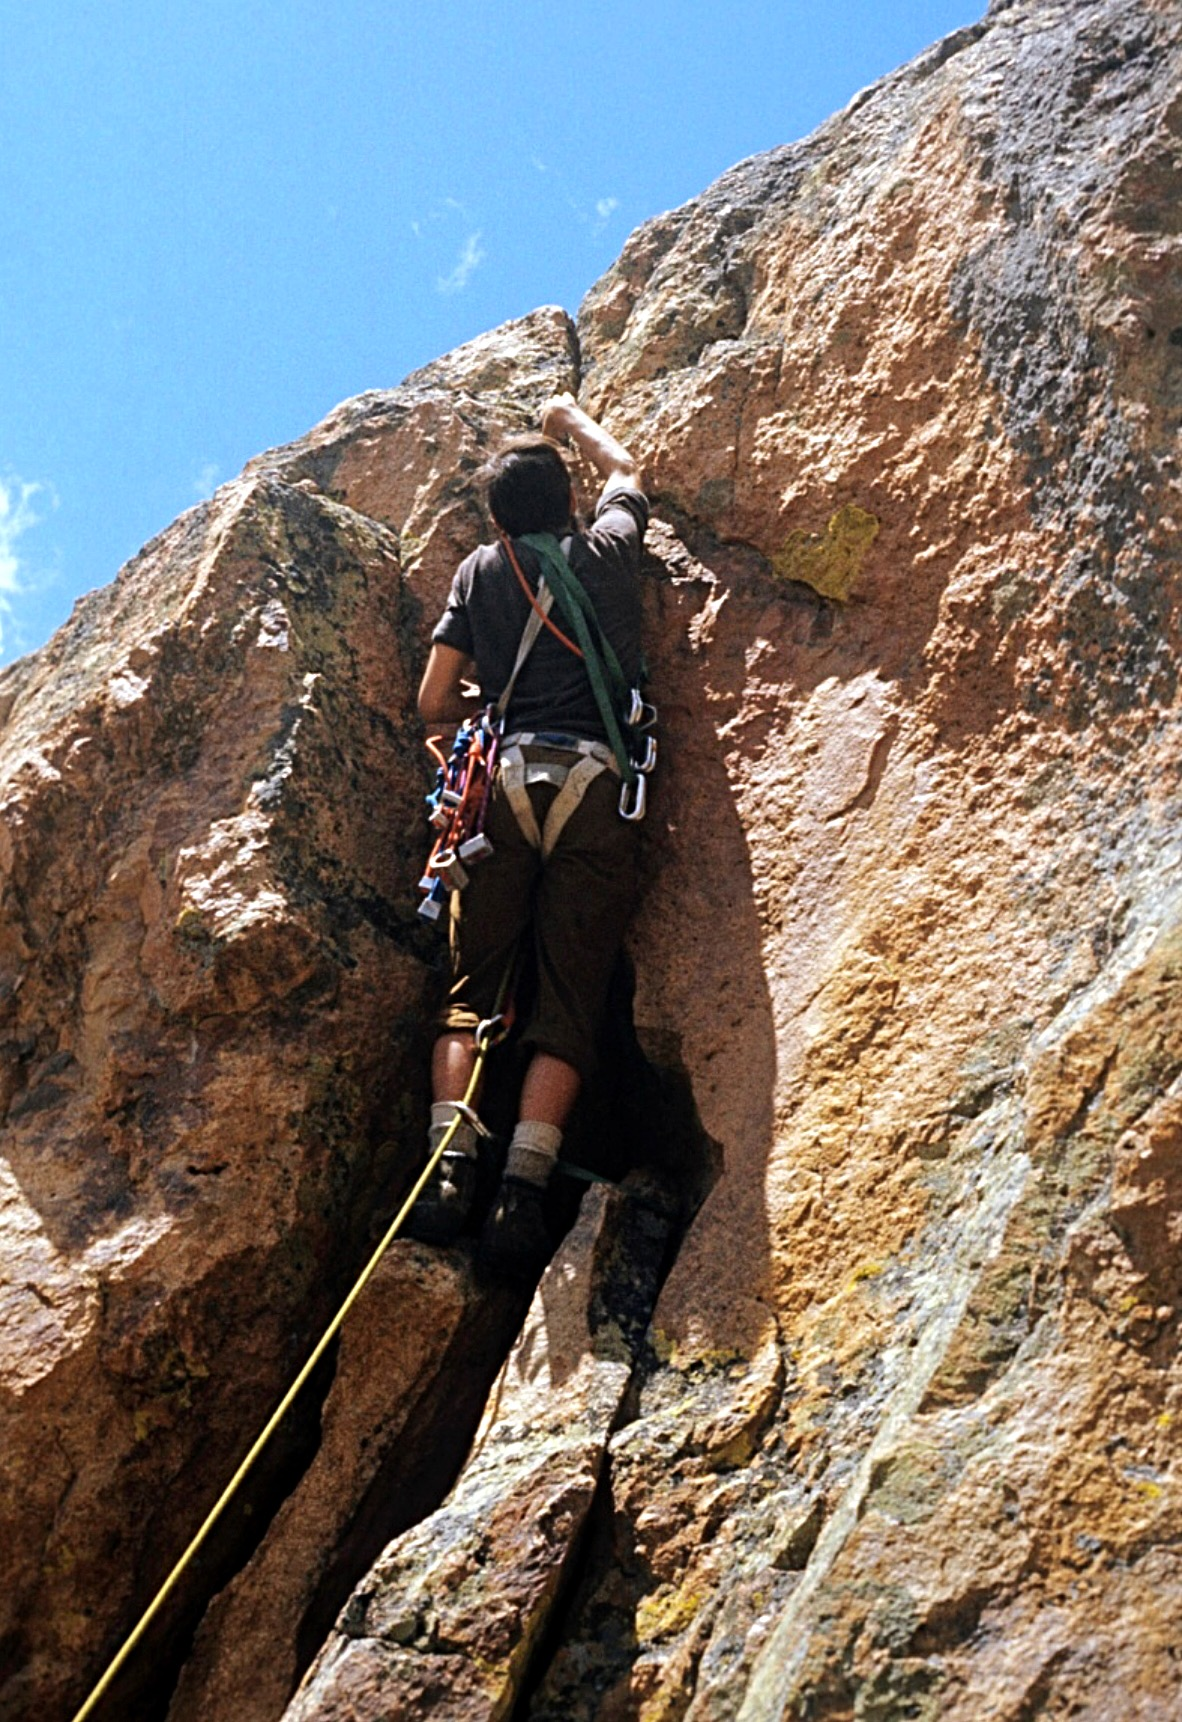 Per the red line, we hiked up a gully & then worked left to where the line starts up again. That was the first pitch & the below photo of Harry is on that crux pitch. Ray Brooks Photo